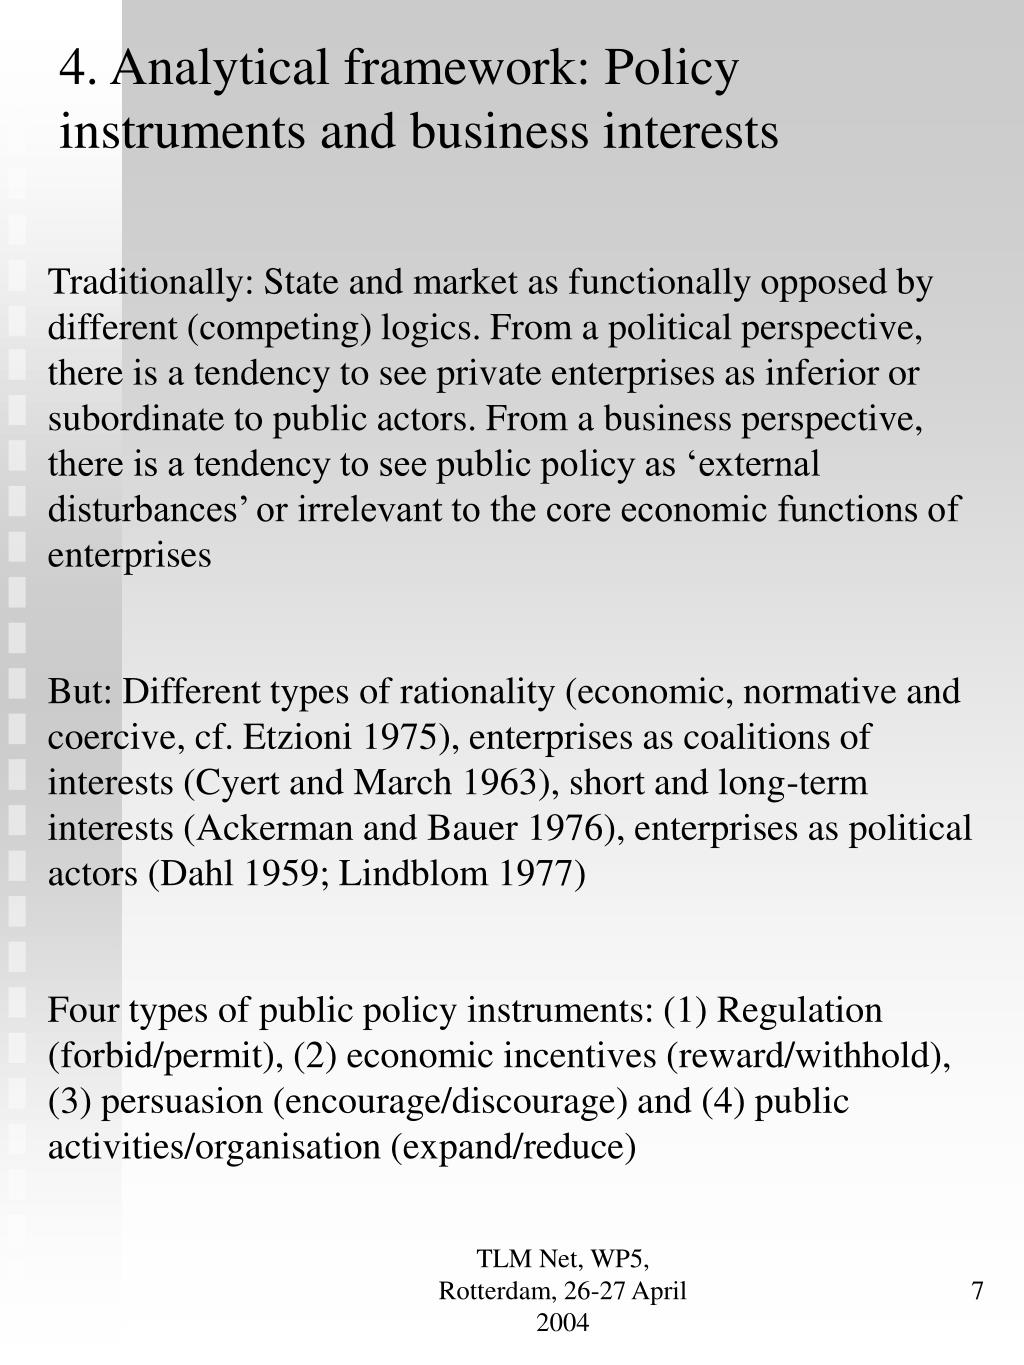 4. Analytical framework: Policy instruments and business interests